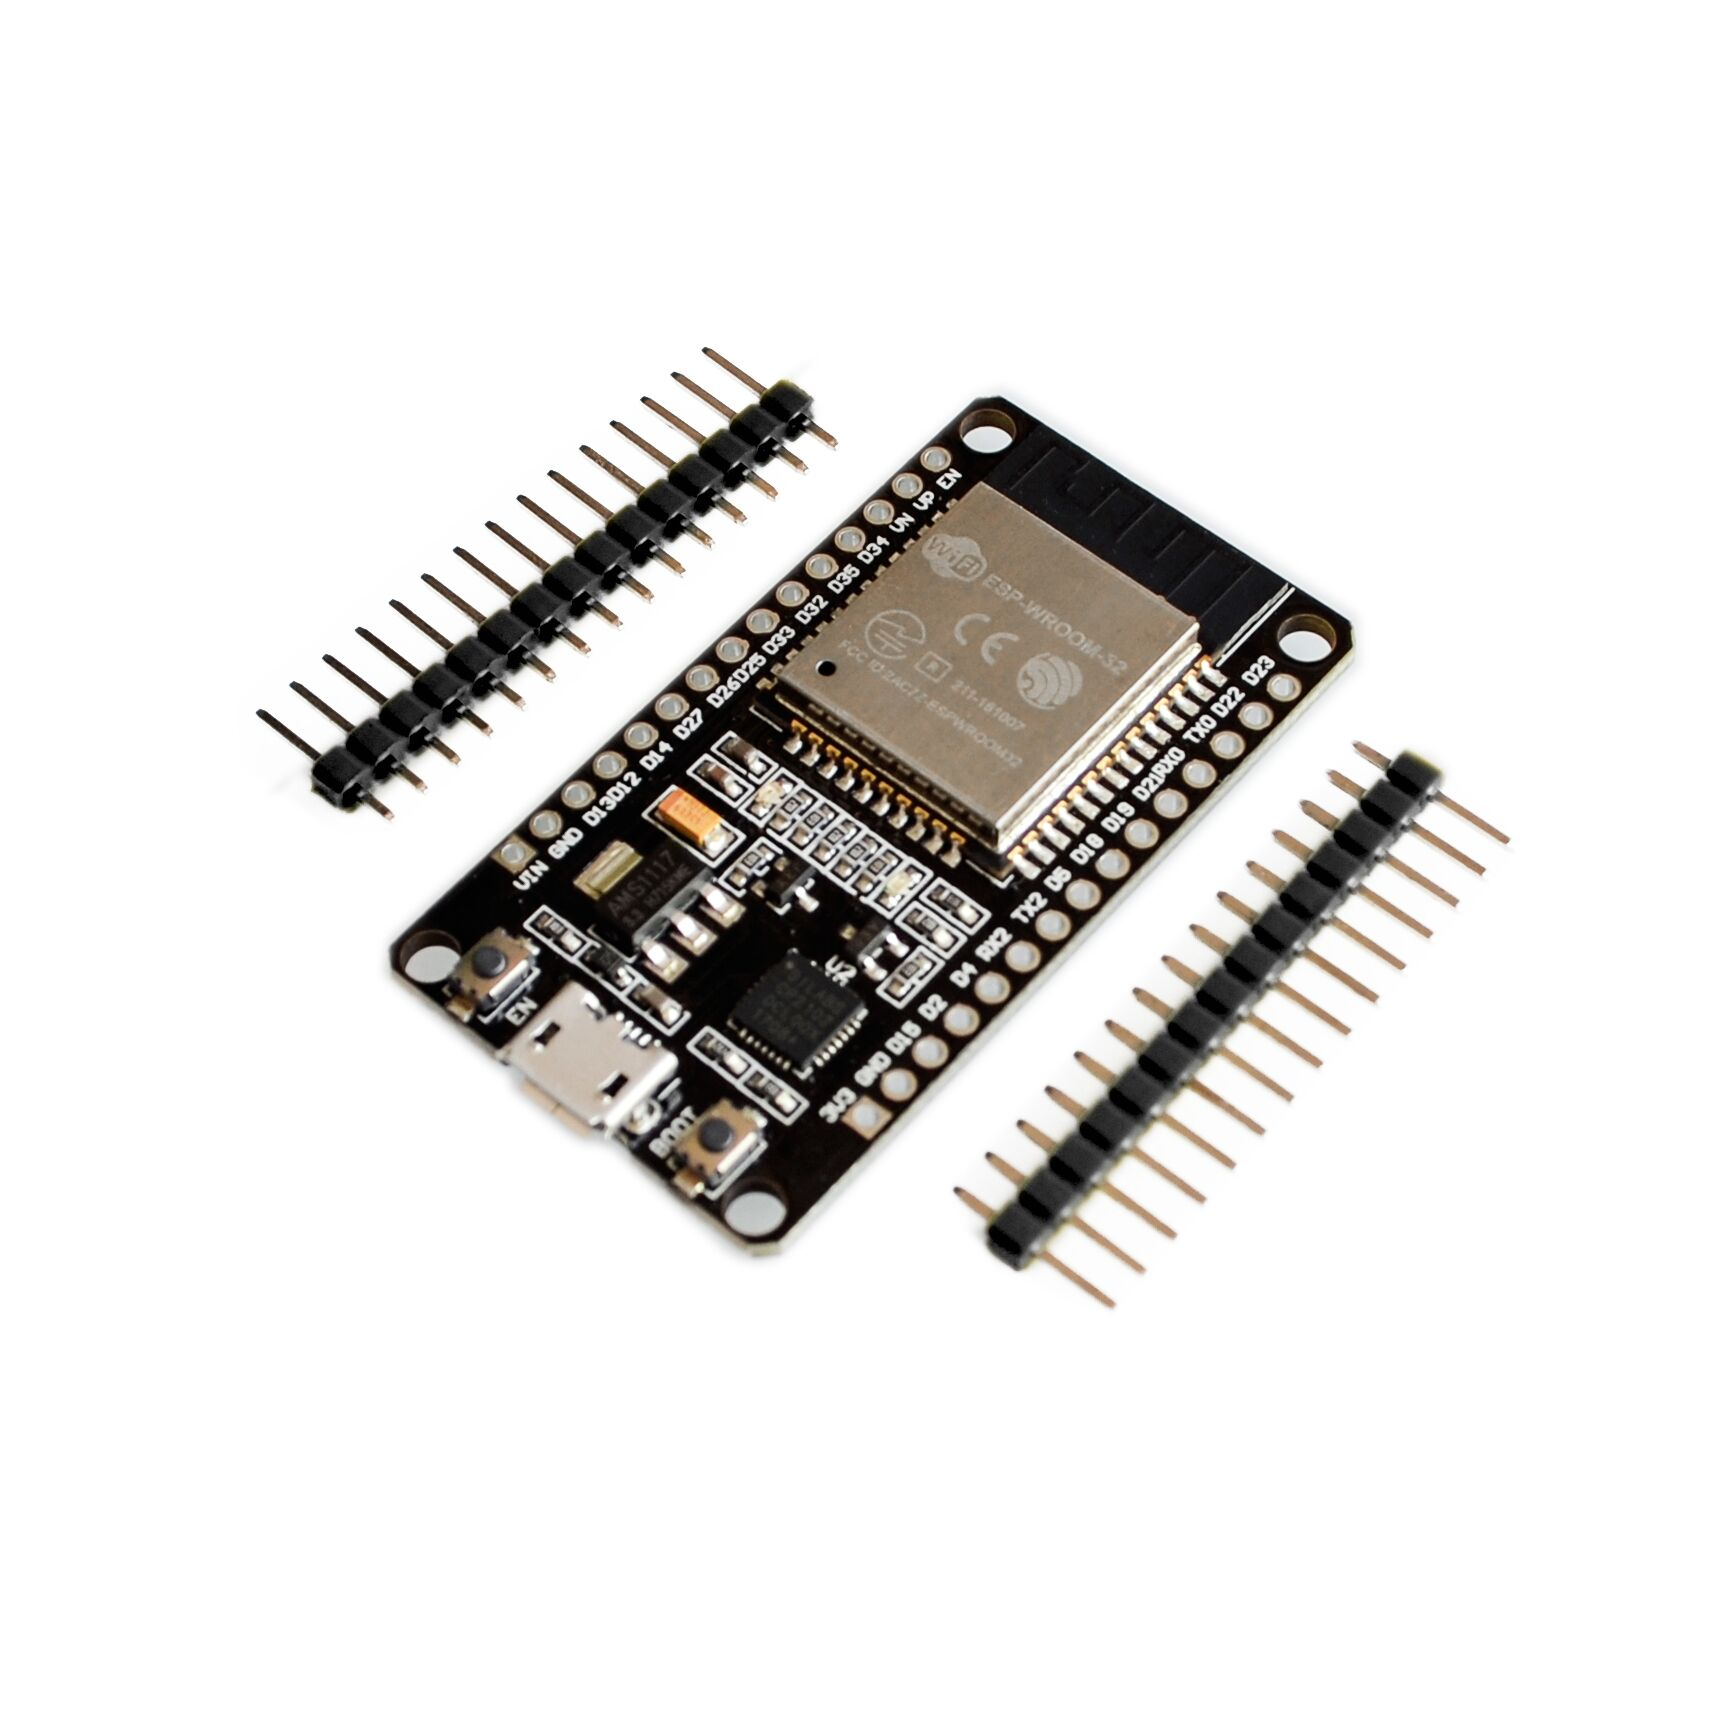 10SETS/LOT ESP32 Development Board WiFi+Bluetooth Ultra-Low Power Consumption Dual Core ESP-32 ESP-32S ESP 32 Similar10SETS/LOT ESP32 Development Board WiFi+Bluetooth Ultra-Low Power Consumption Dual Core ESP-32 ESP-32S ESP 32 Similar